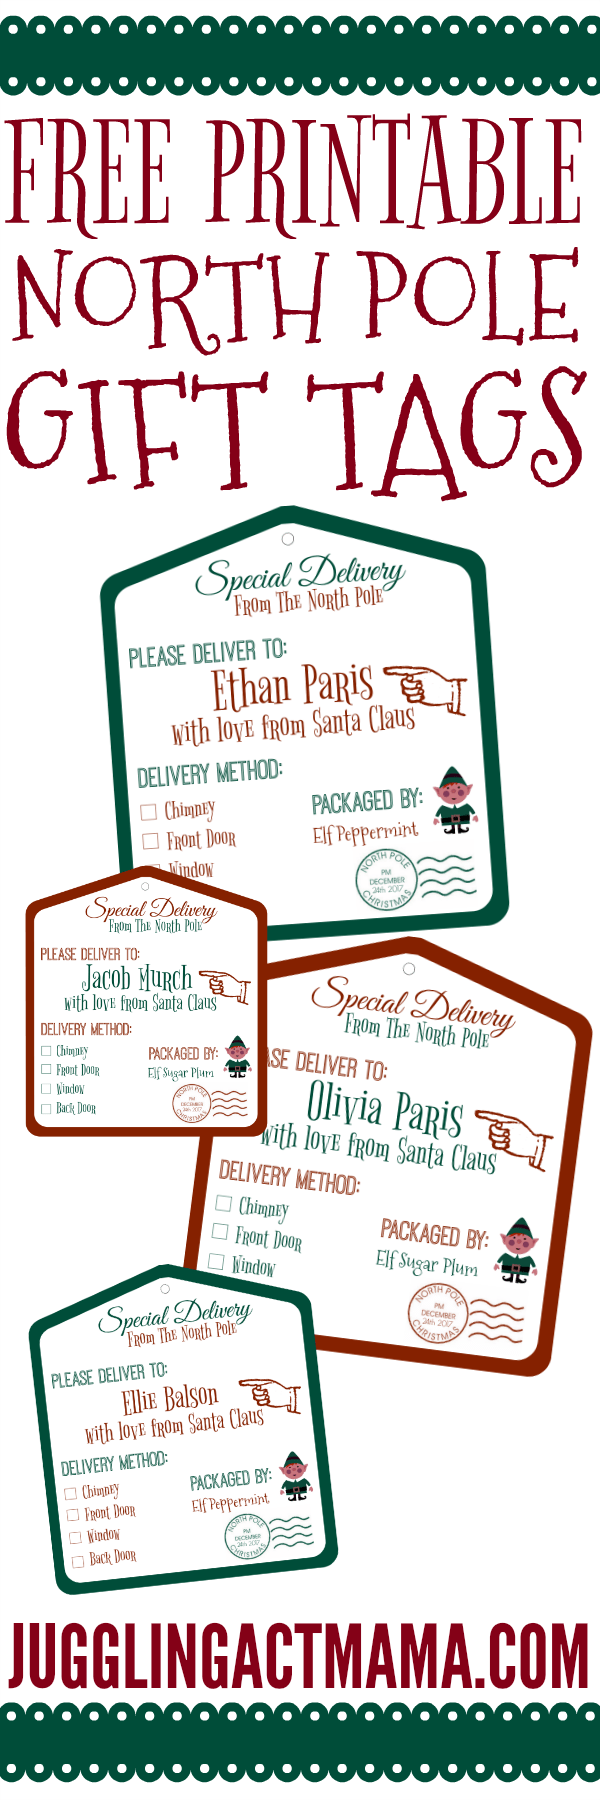 photograph about Free Printable Santa Gift Tags titled North Pole Printable Reward Tags - Juggling Act Mama